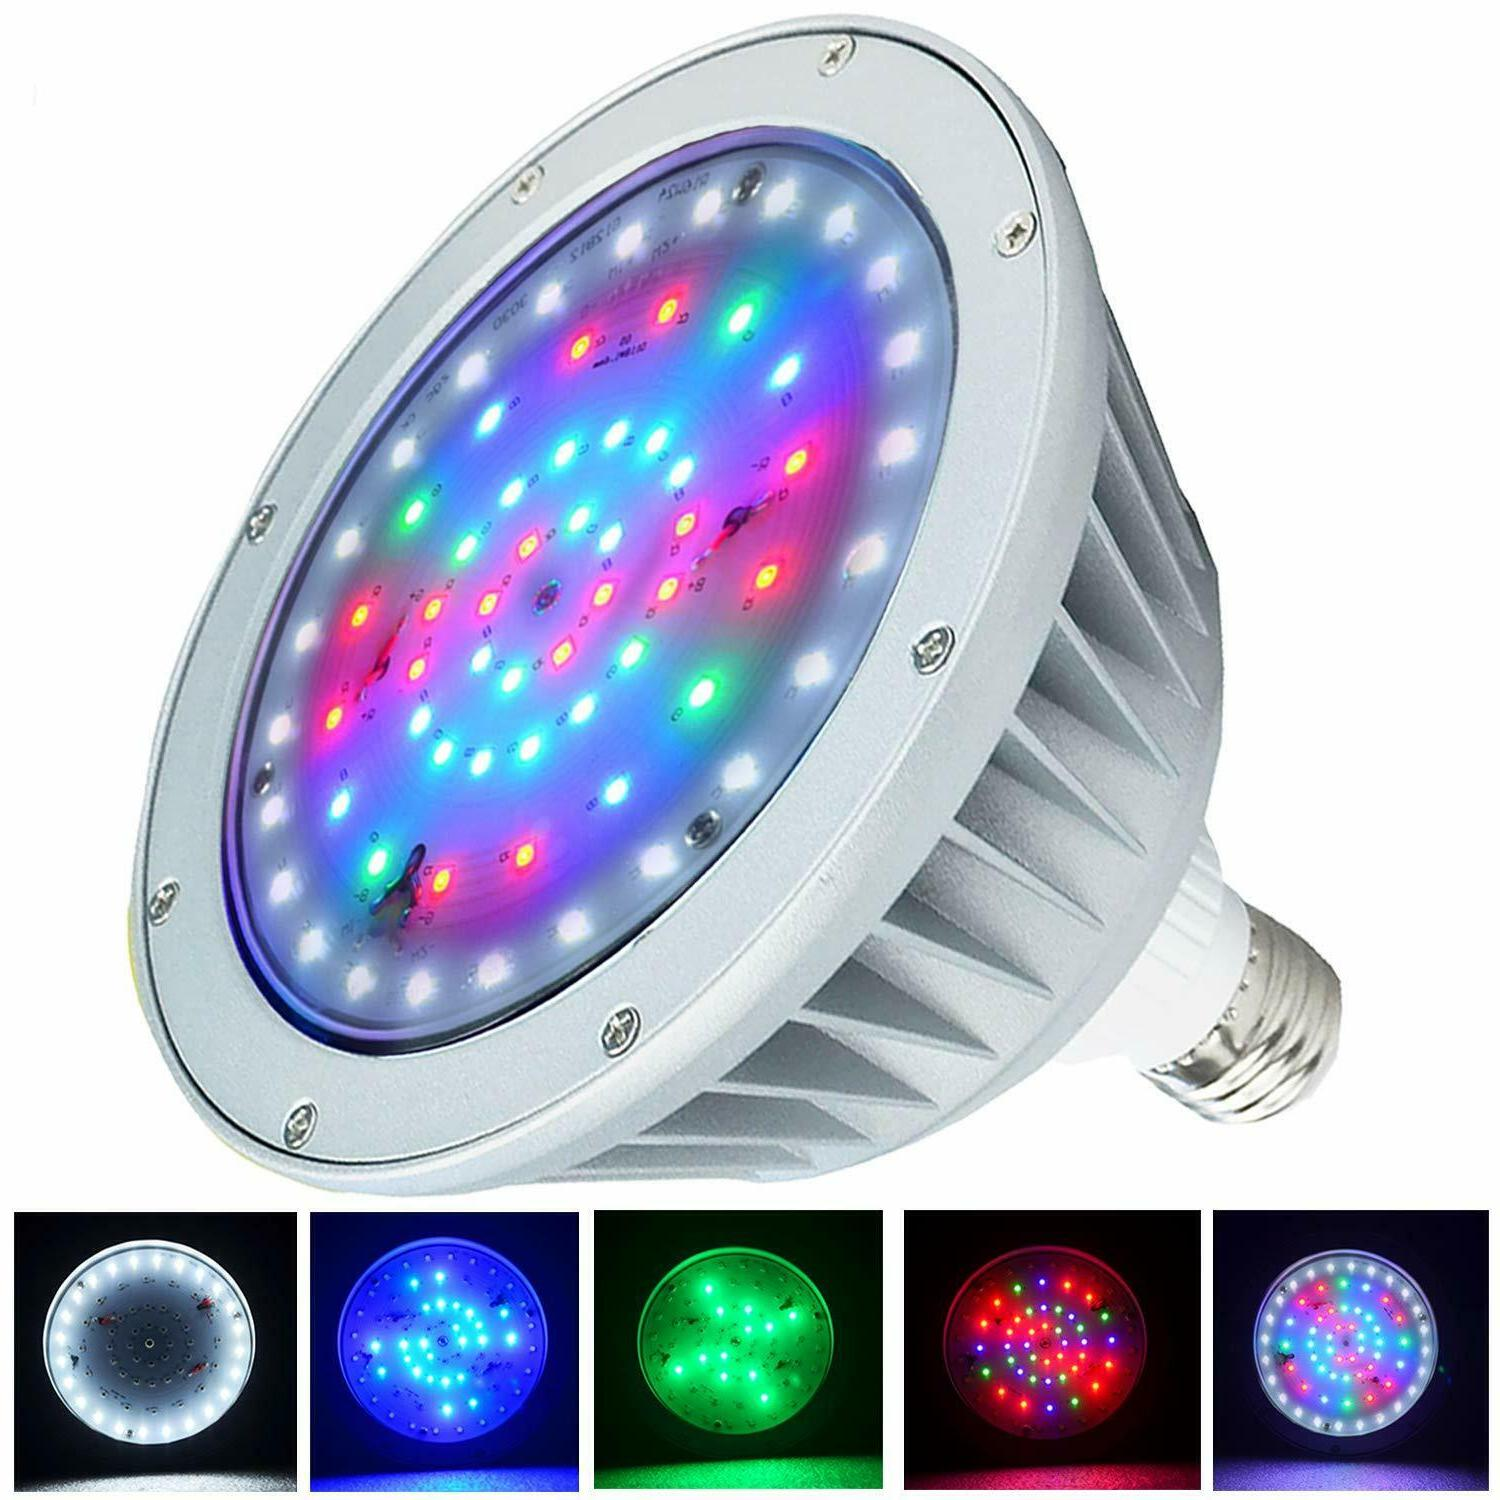 LED Pool Light Bulb for Inground Swimming Pool,2